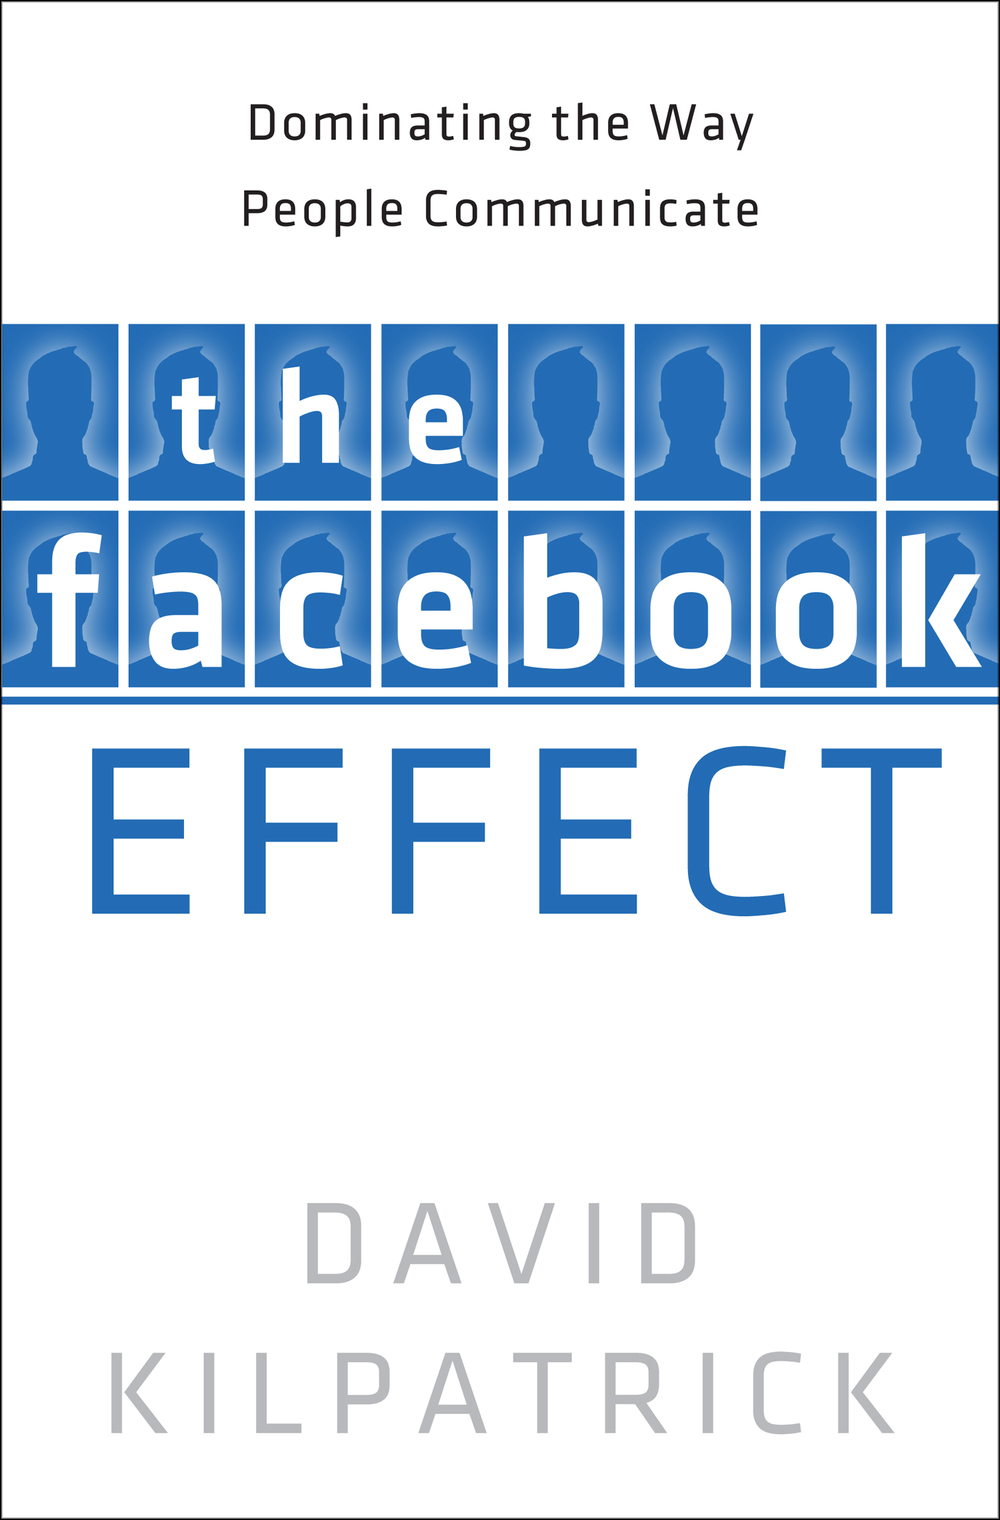 THE-FACEBOOK-EFFECT-comp2-ss6.jpg